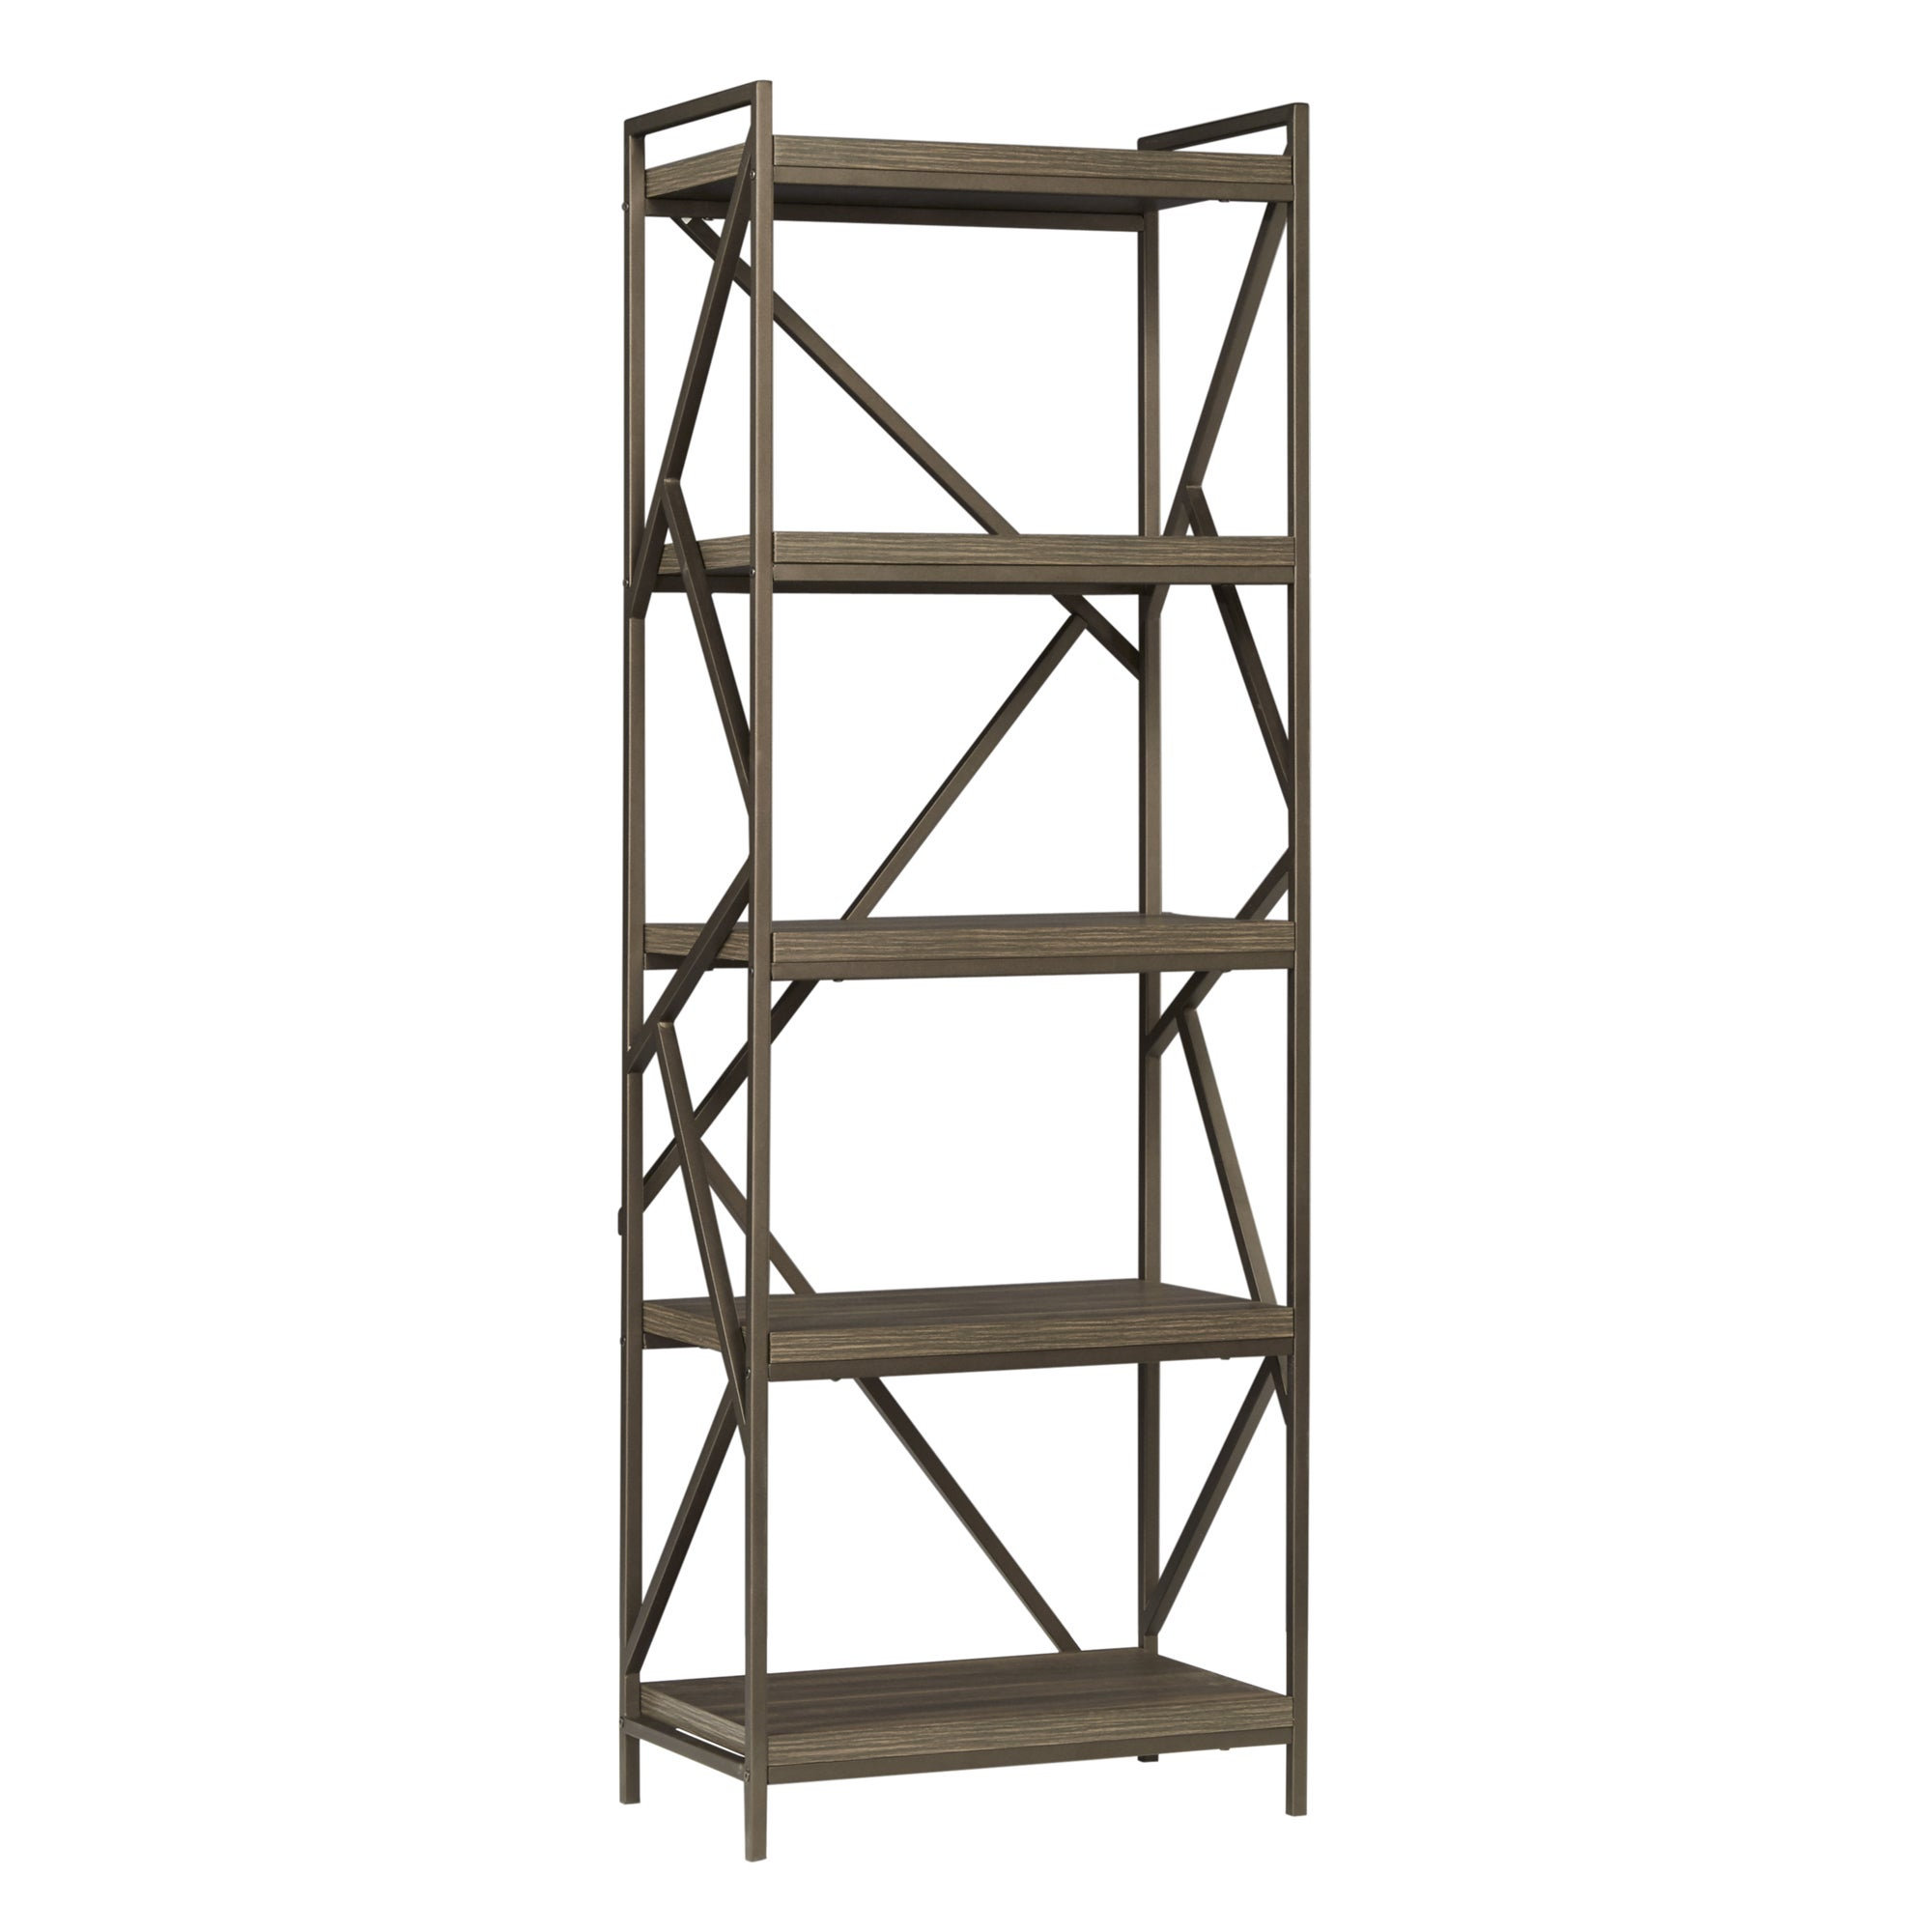 Lincoln Metal Distressed Brown Bookshelf Media Tower by iNSPIRE Q Classic -  Free Shipping Today - Overstock.com - 17494108